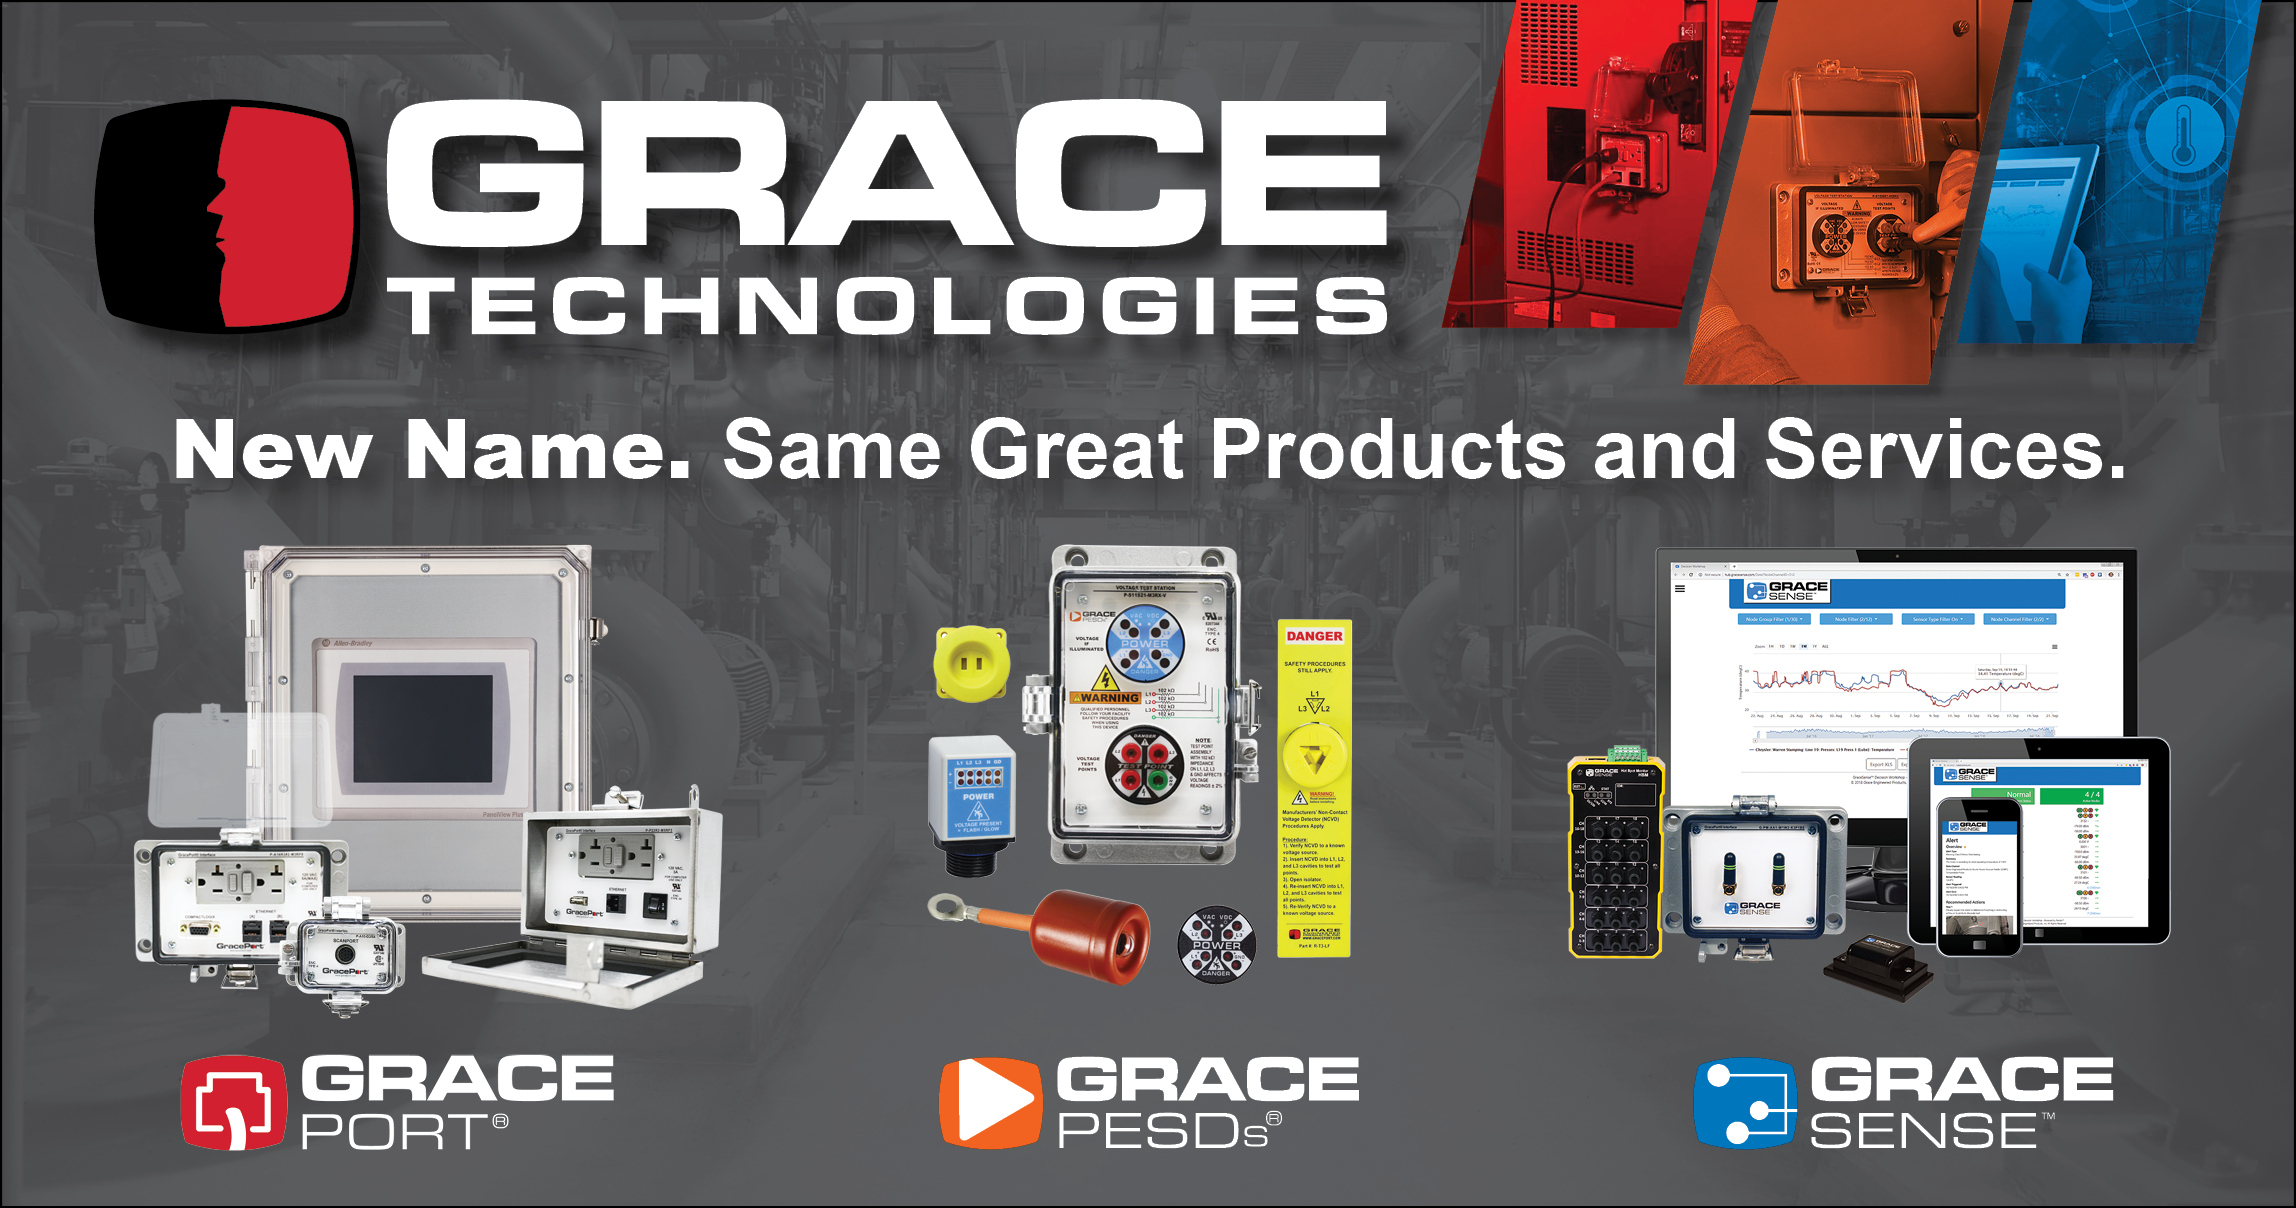 Grace Technologies product line overview